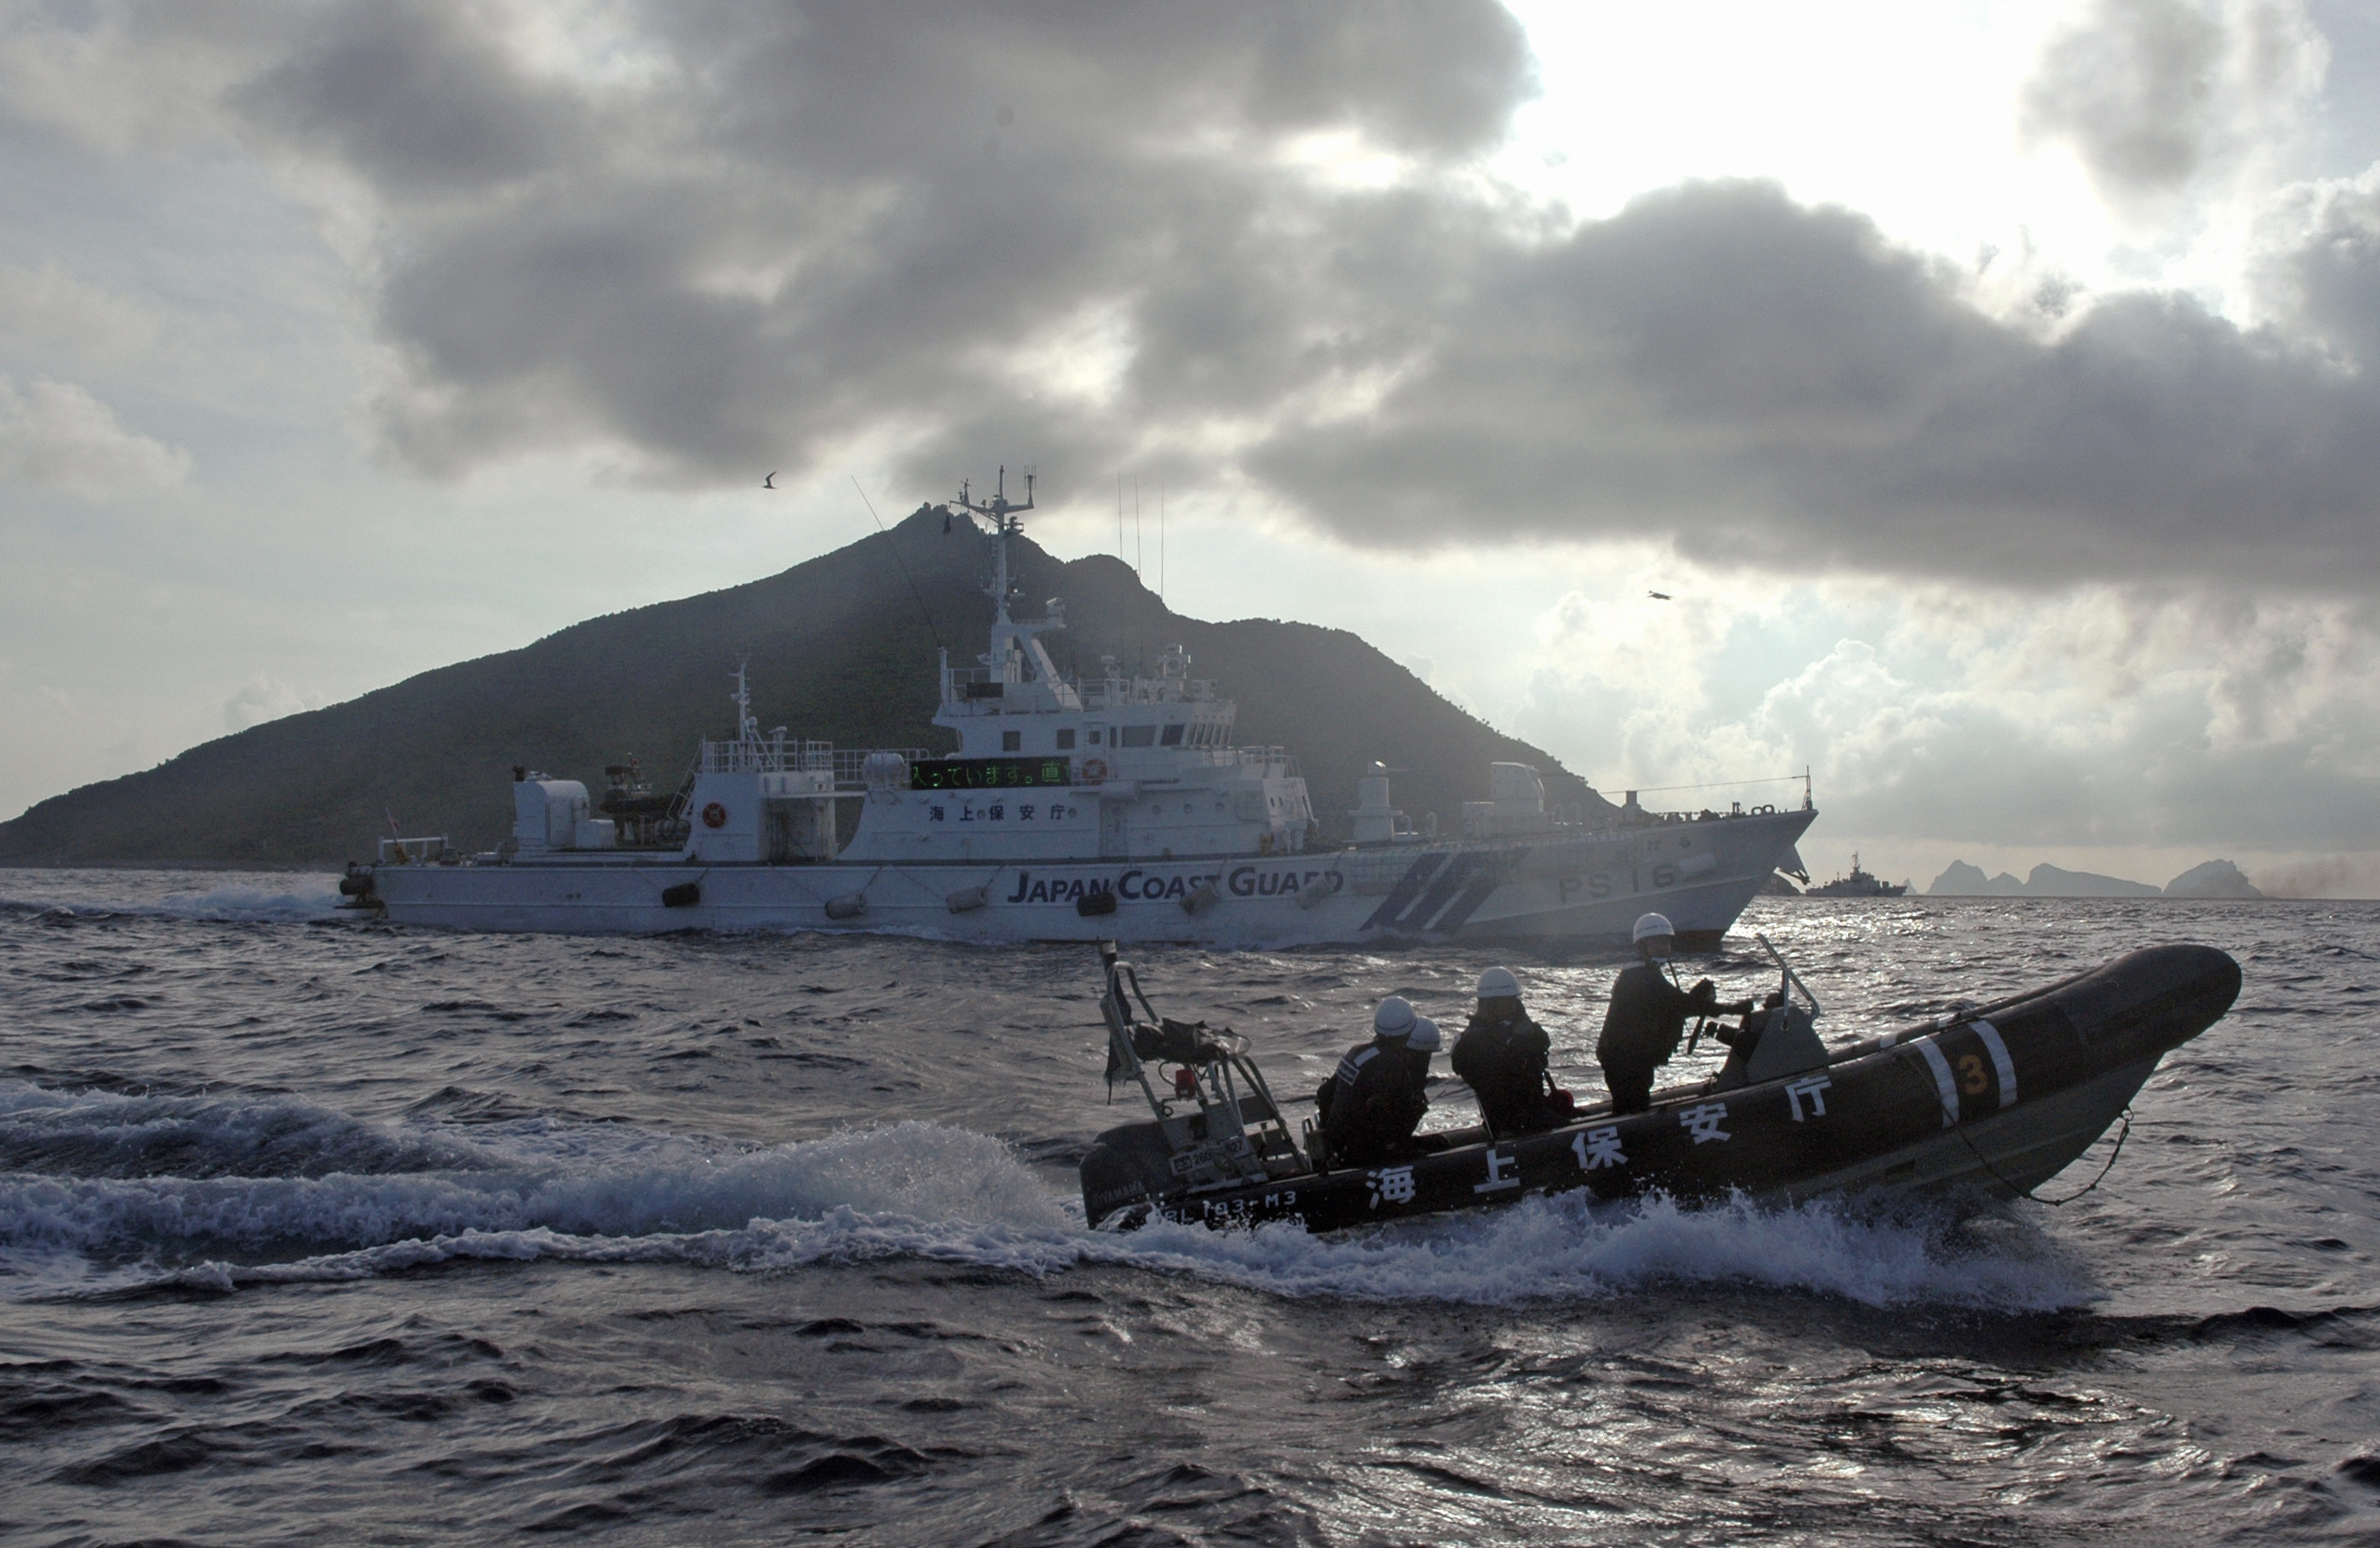 Japanese Coast Guard boat and vessel sail alongside Japanese activists' fishing boat, not in photo, warning the activists away from a group of disputed islands called Diaoyu by China and Senkaku by Japan, early Sunday, Aug. 18, 2013. Nearly two dozen Japanese nationalist activists and fishermen have sailed to a small group of islands at the center of a territorial dispute with China. They were closely monitored by Japan's Coast Guard, but there were no Chinese patrols in the area and no incidents were reported. (AP Photo/Emily Wang)